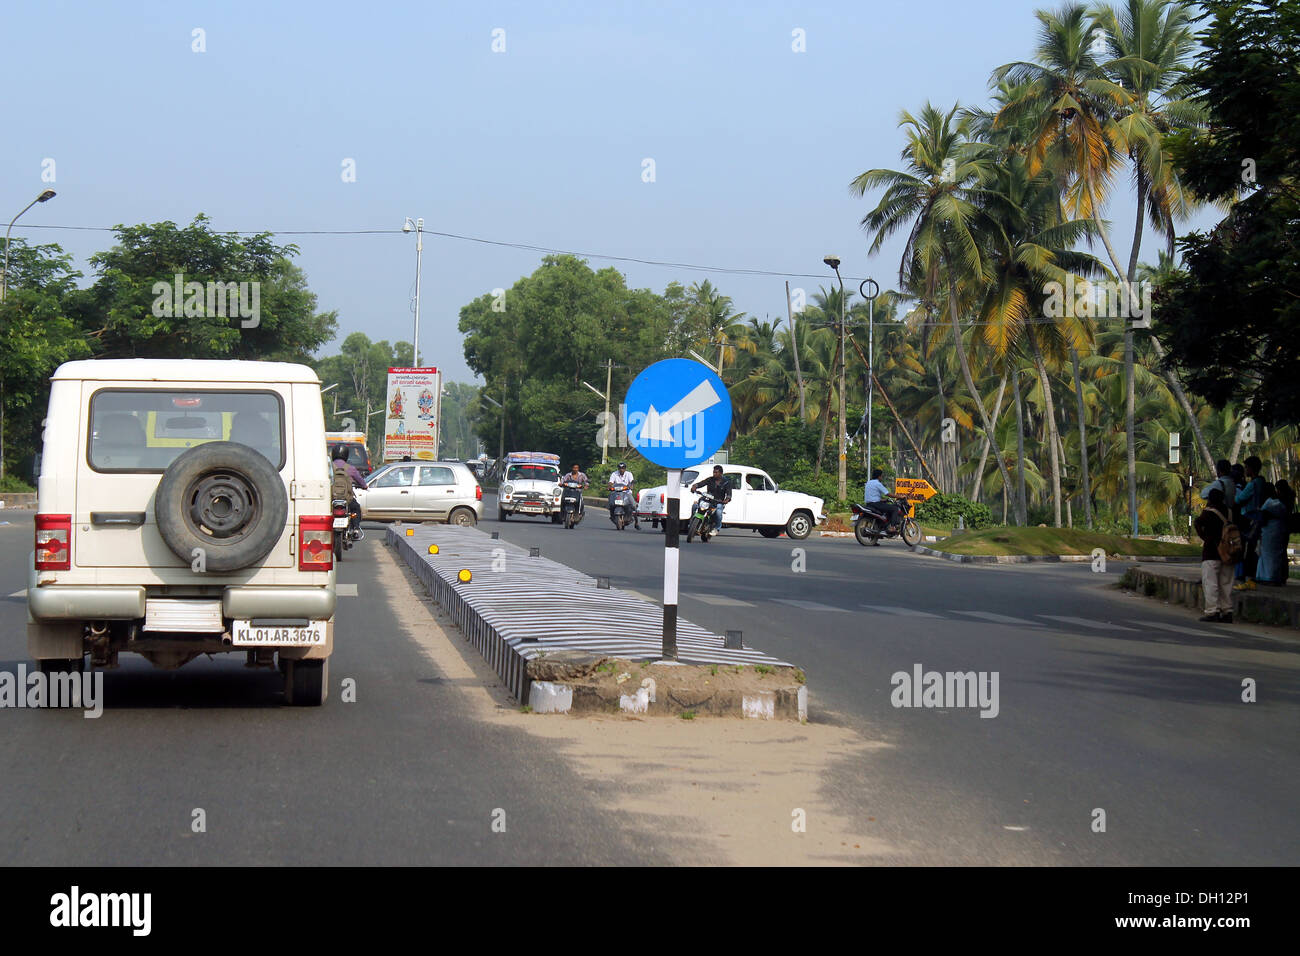 Compulsory keep left traffic sign board in Indian road - Stock Image